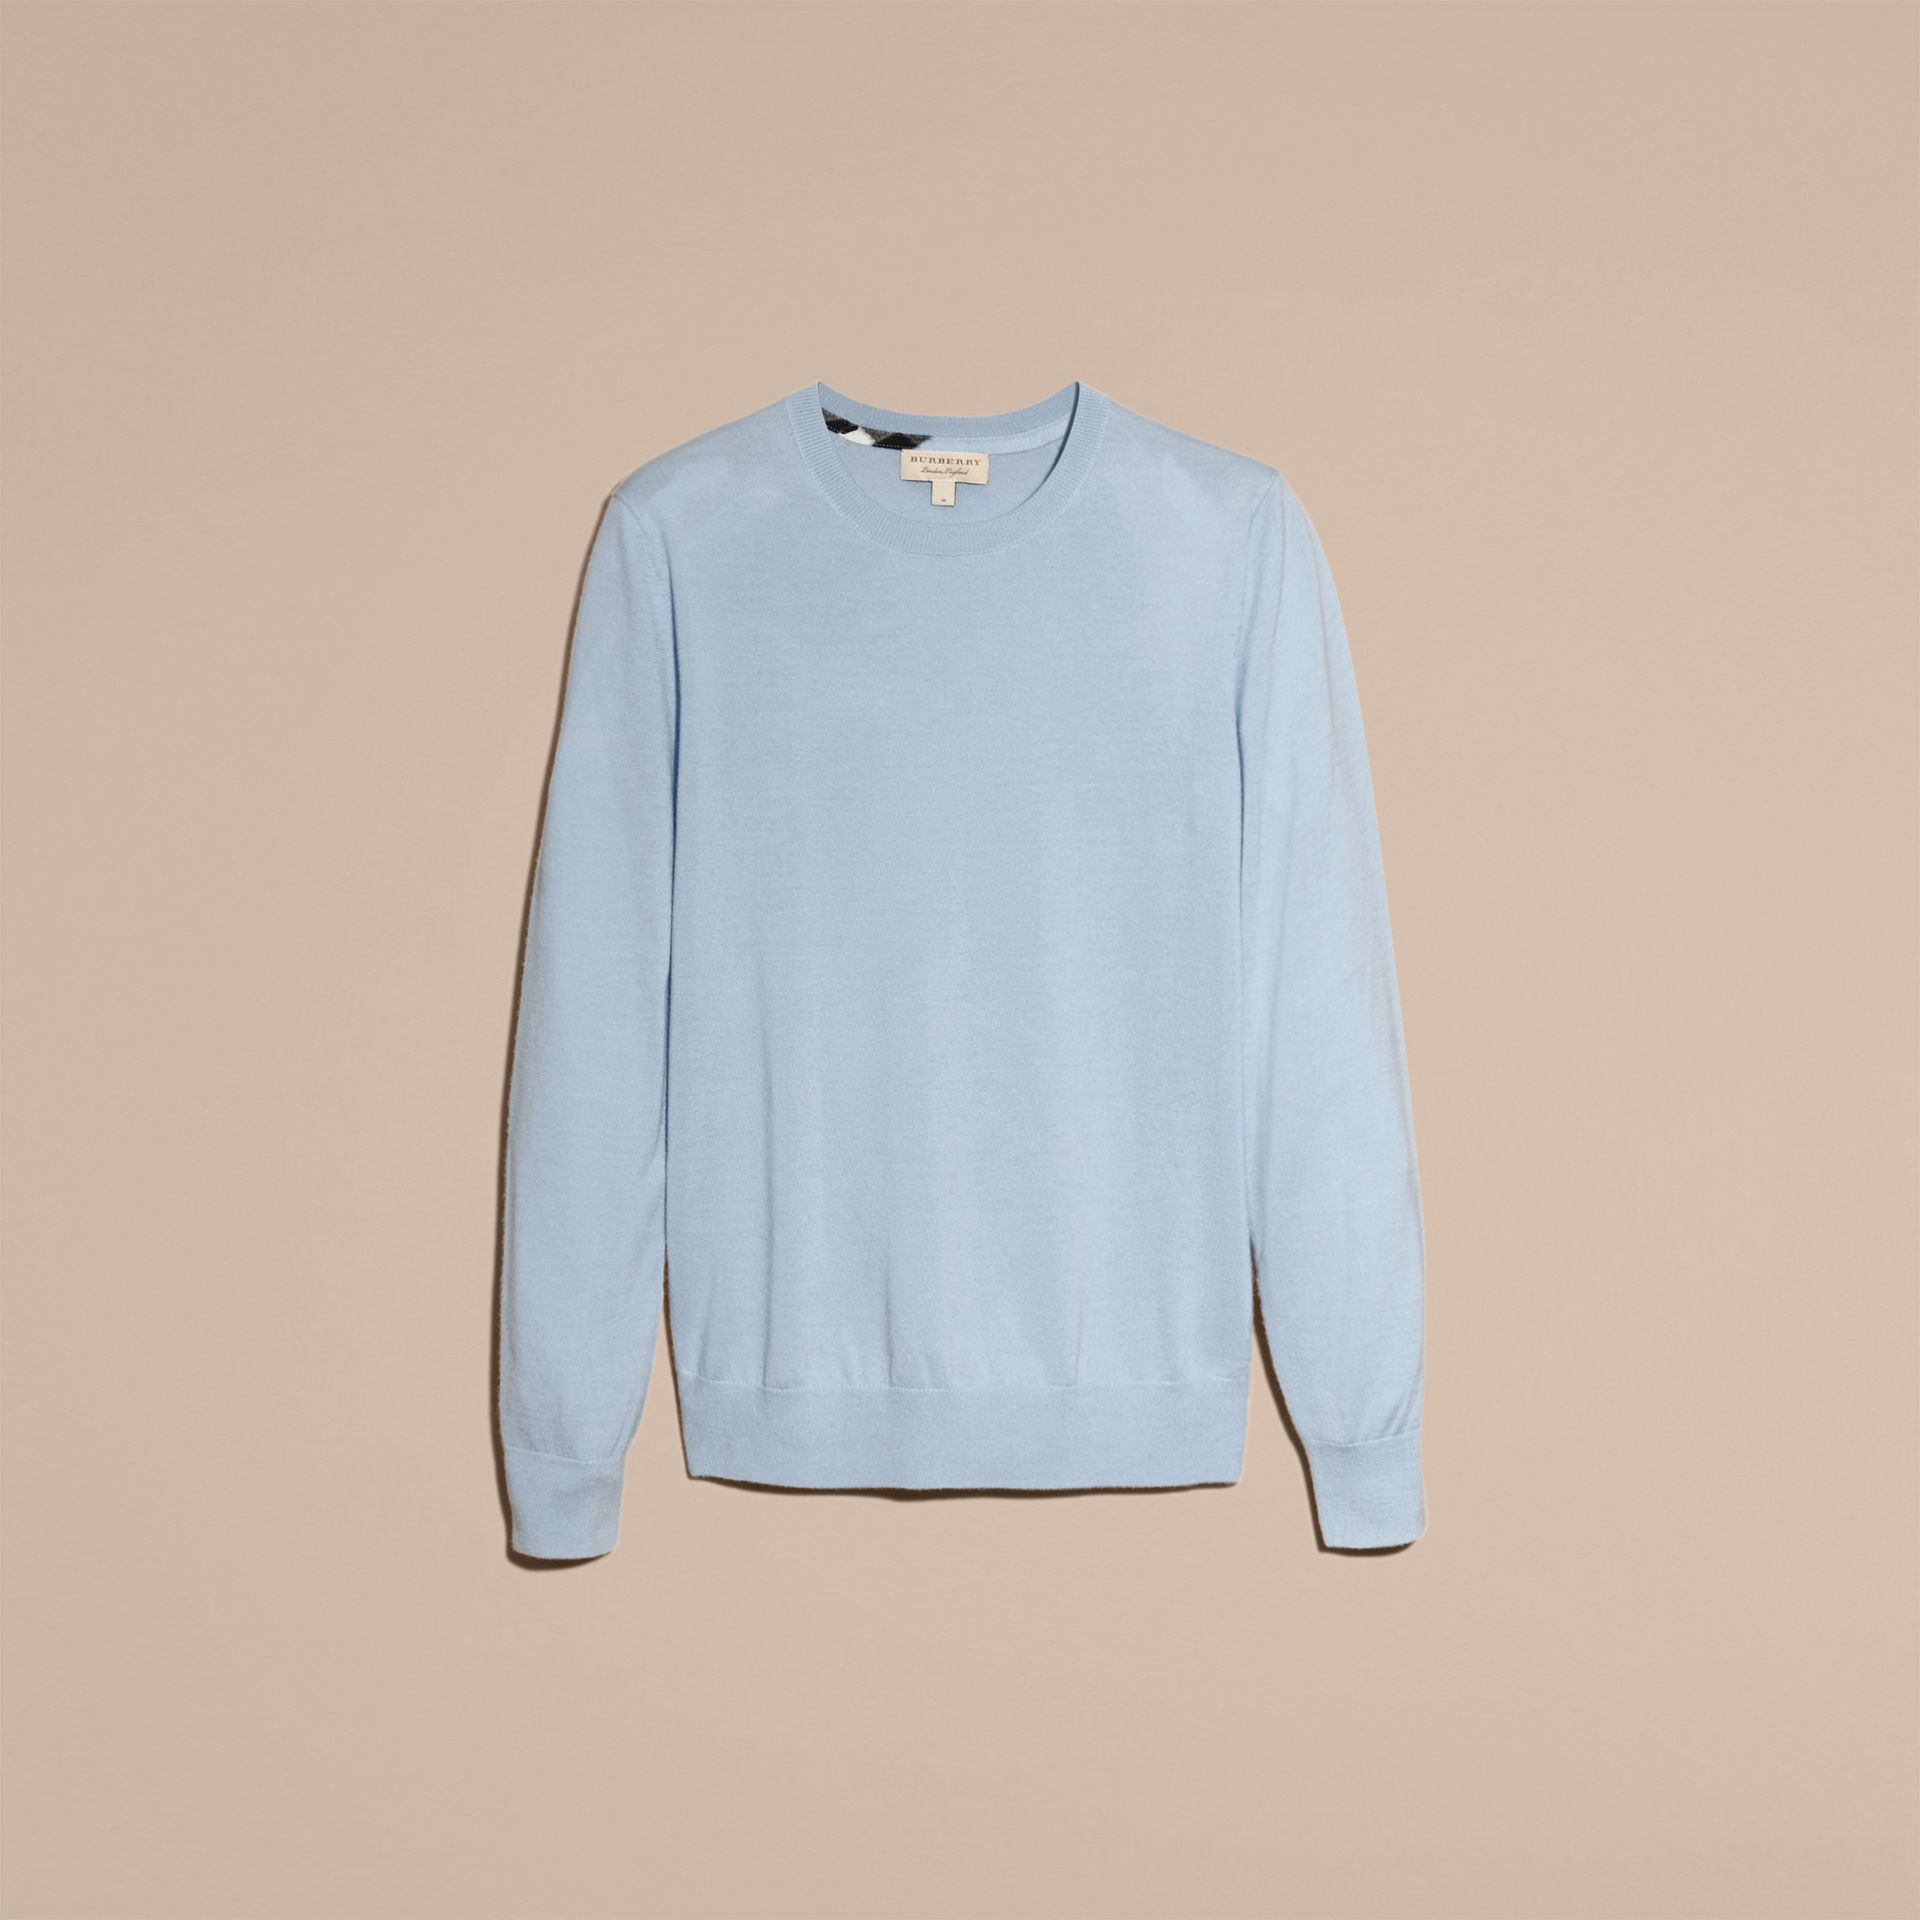 Check Jacquard Detail Cashmere Sweater in Light Blue - Men | Burberry Singapore - gallery image 4